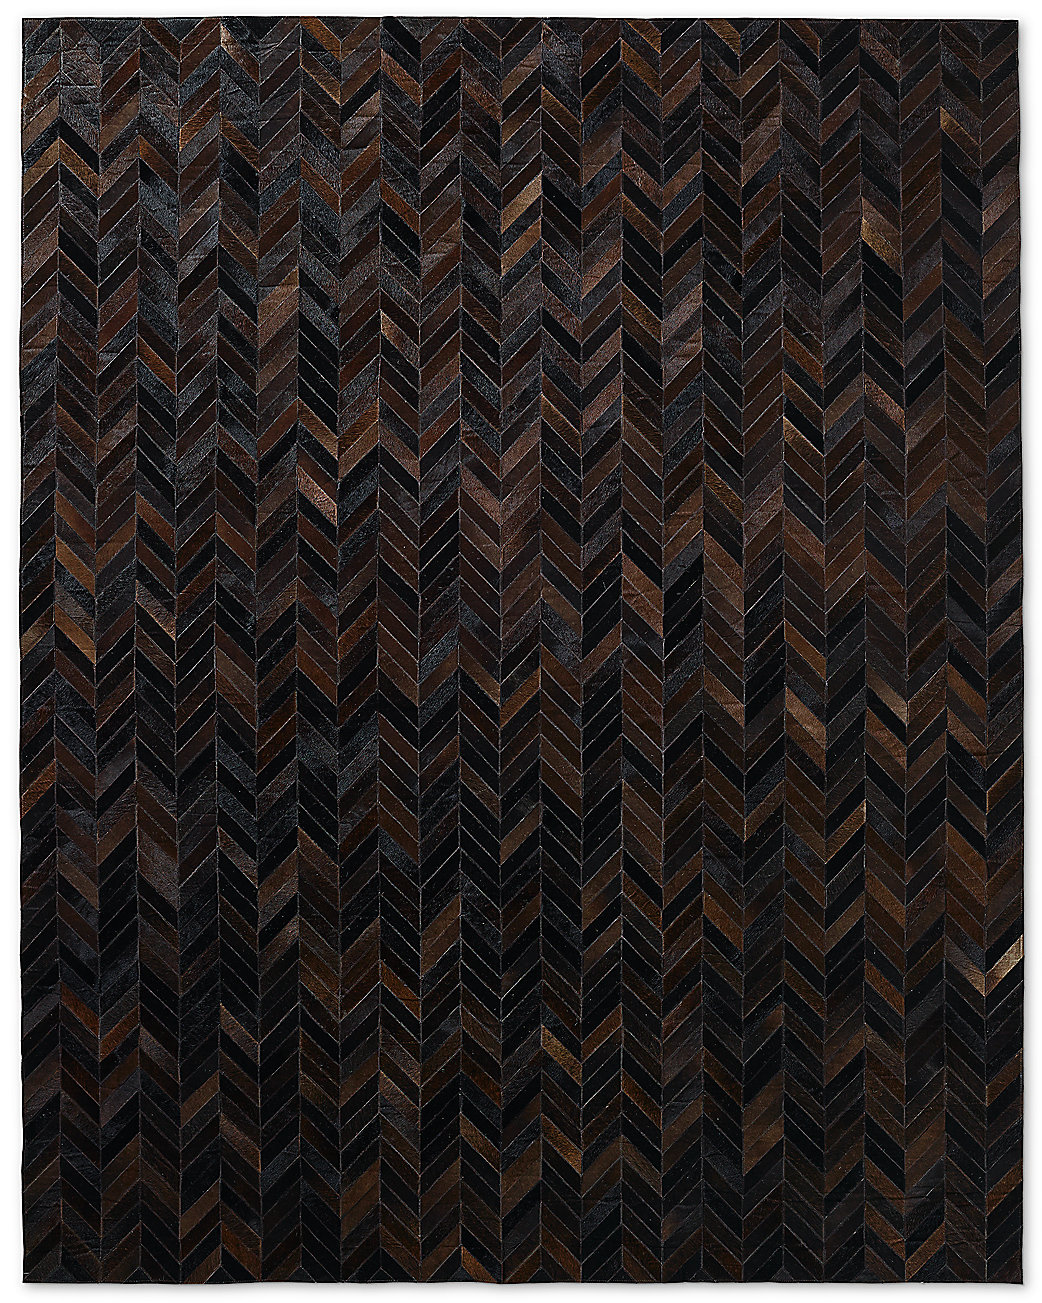 Chevron Cowhide Rug - Charcoal